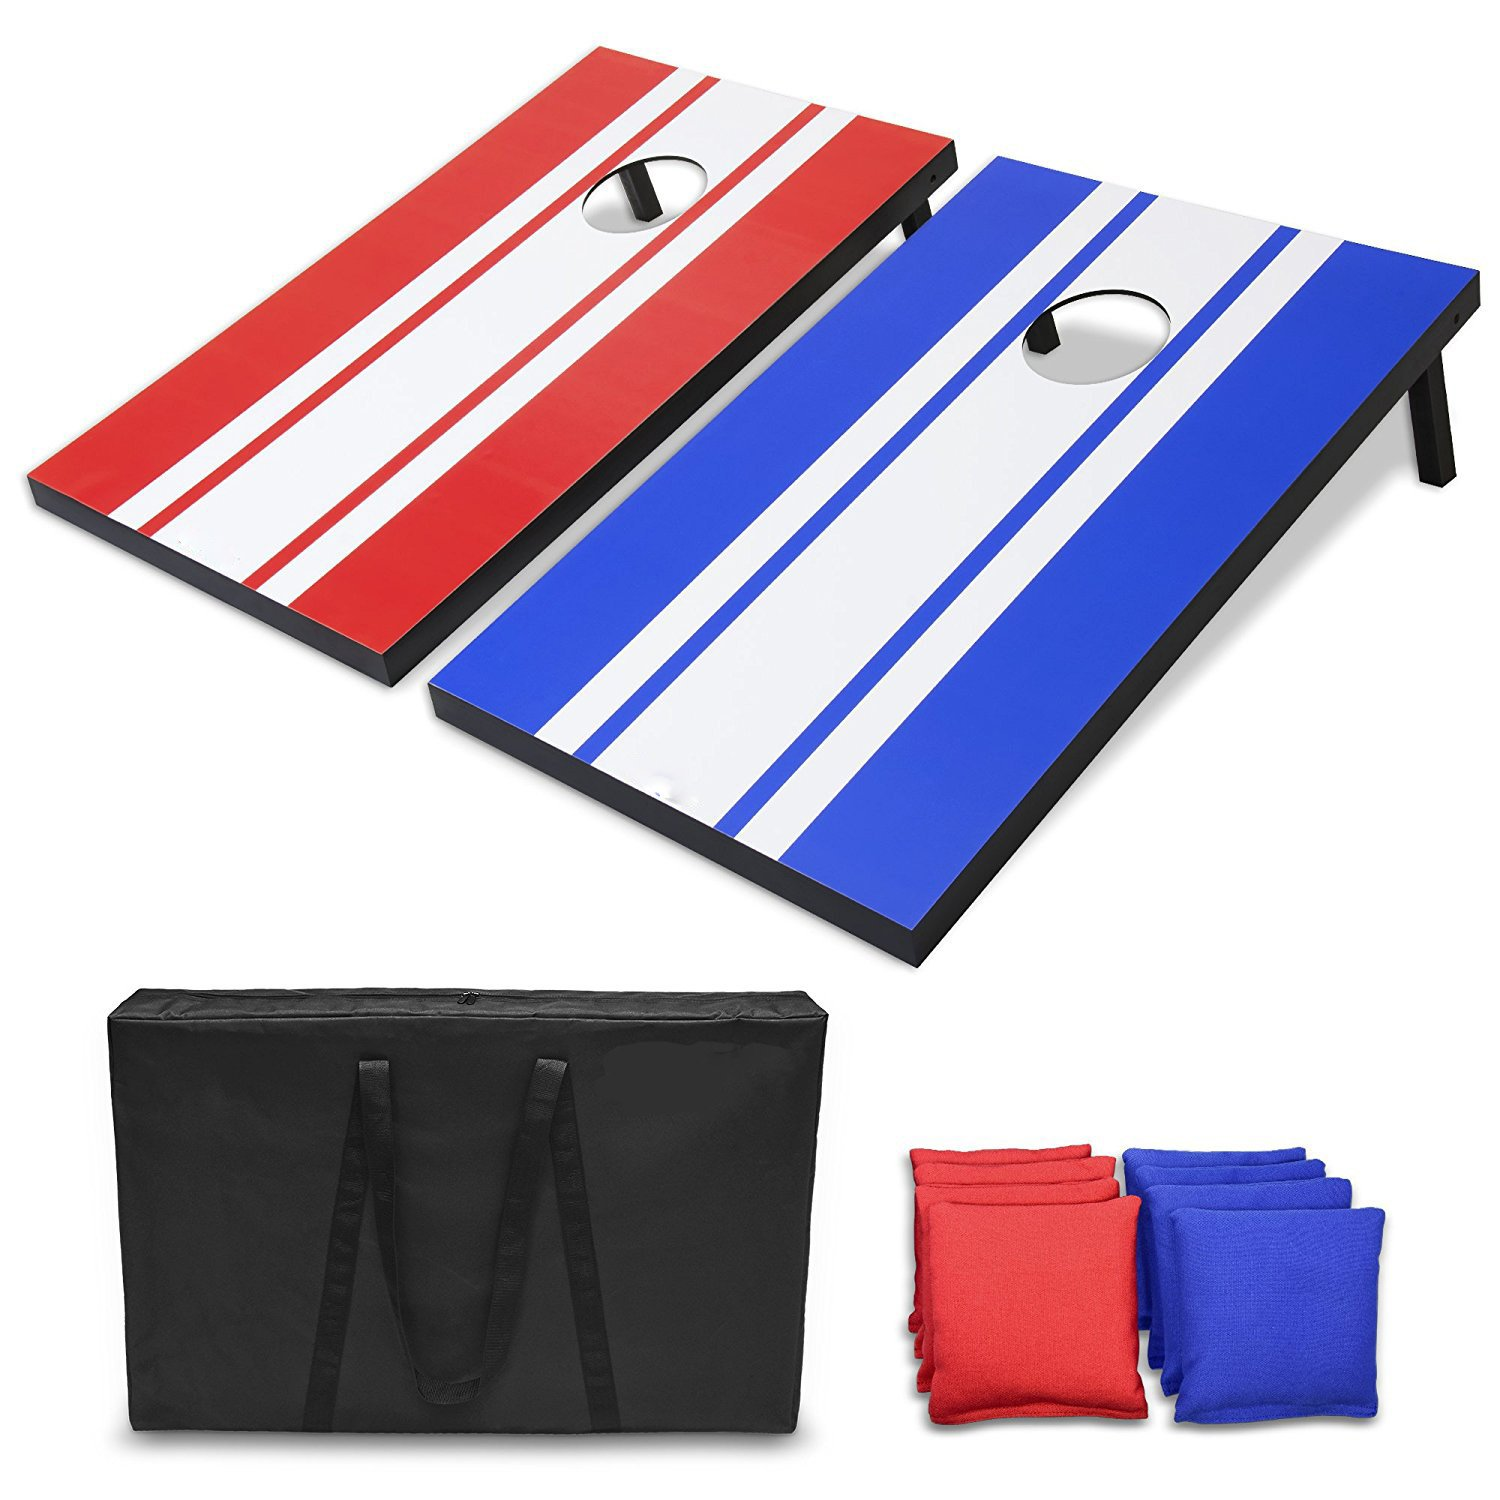 M.E.R.A. Classic Cornhole Set Includes 8 Bags, Water-Resistant 3' X 2' Boards Travel Carrying Case And Rules